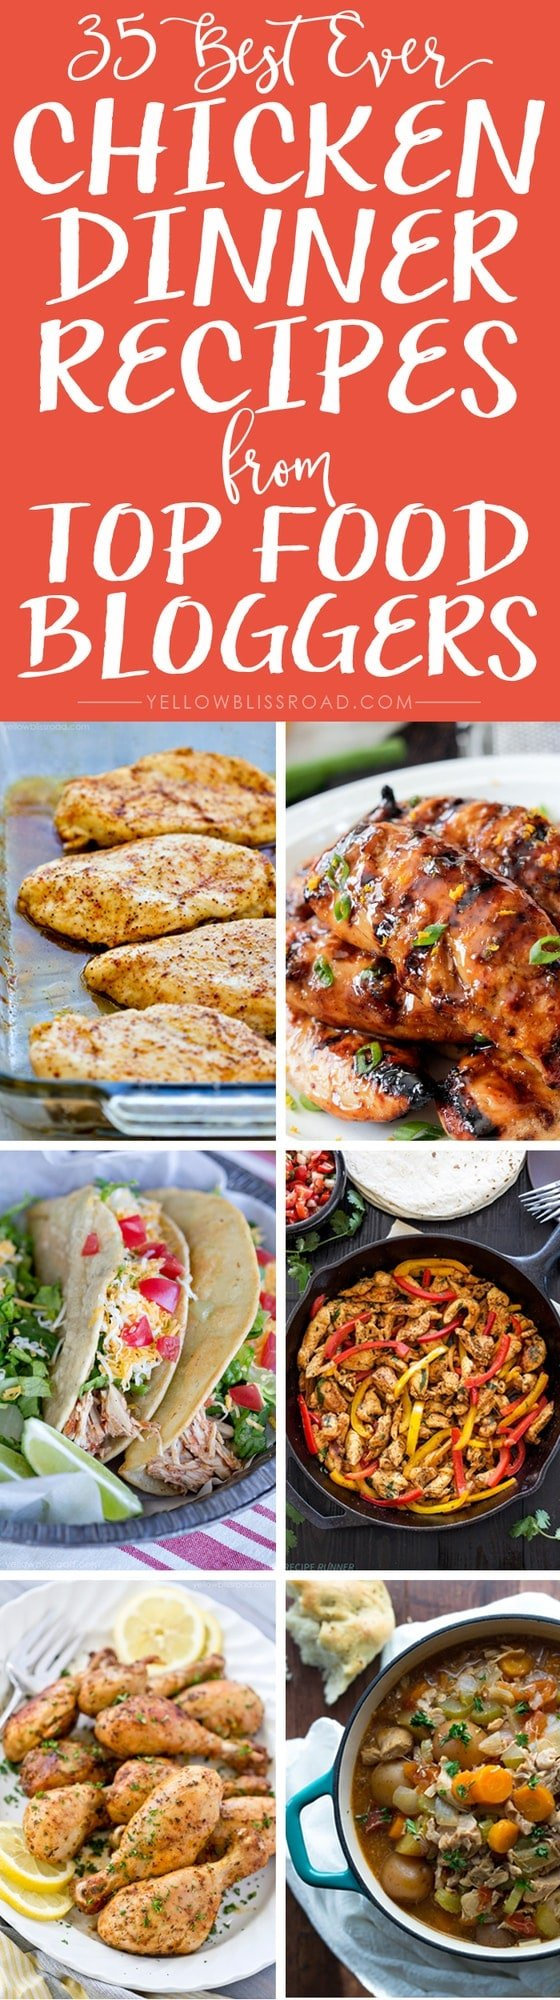 35 Best Ever Chicken Dinner Recipes from Top Food Bloggers - the best chicken recipes for everyone's tastes!